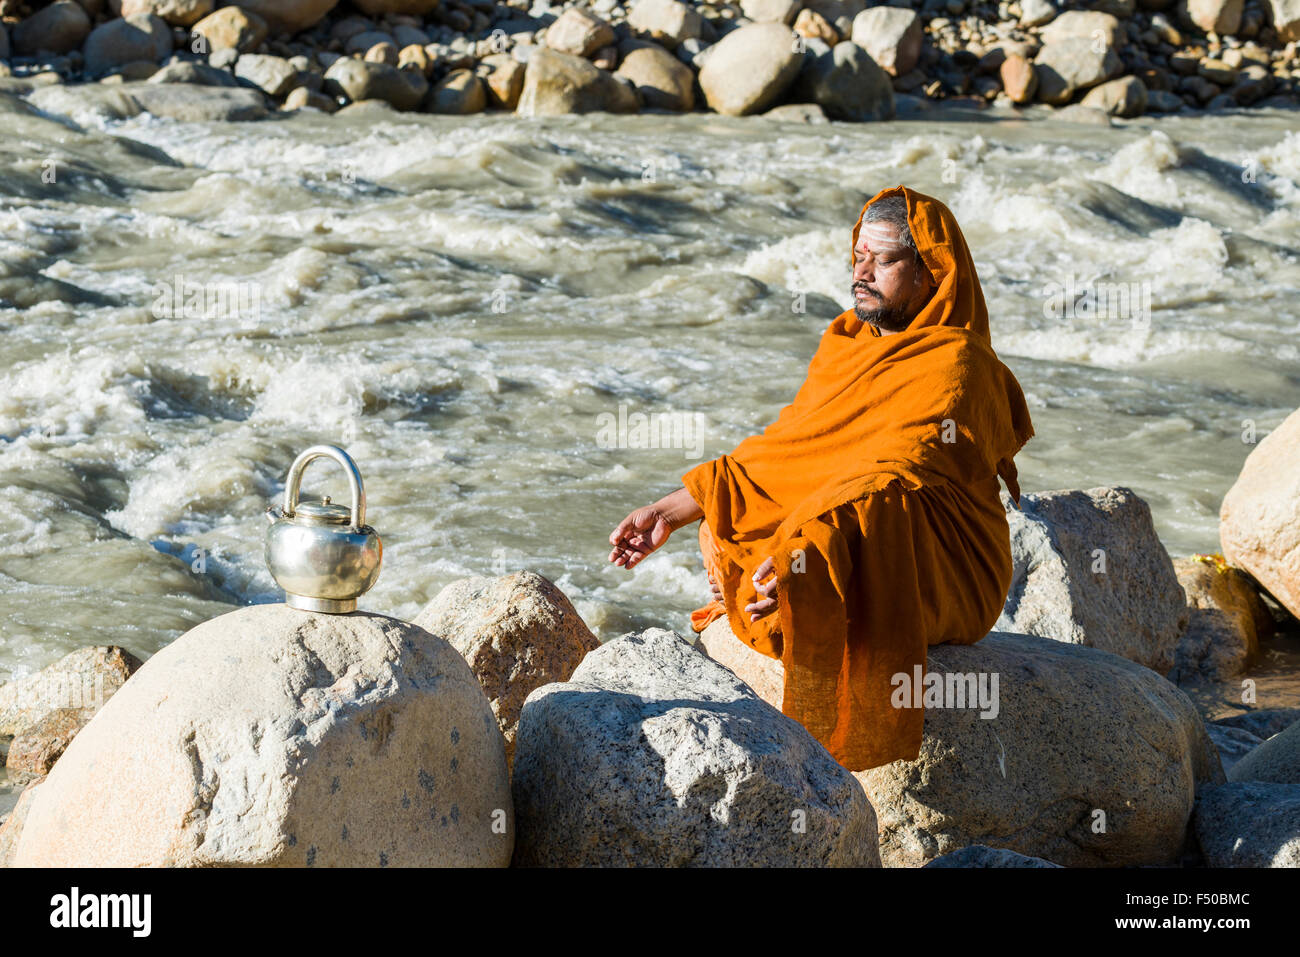 A Sadhu, holy man, is sitting on a rock and meditating at the banks of the river Ganges Stock Photo